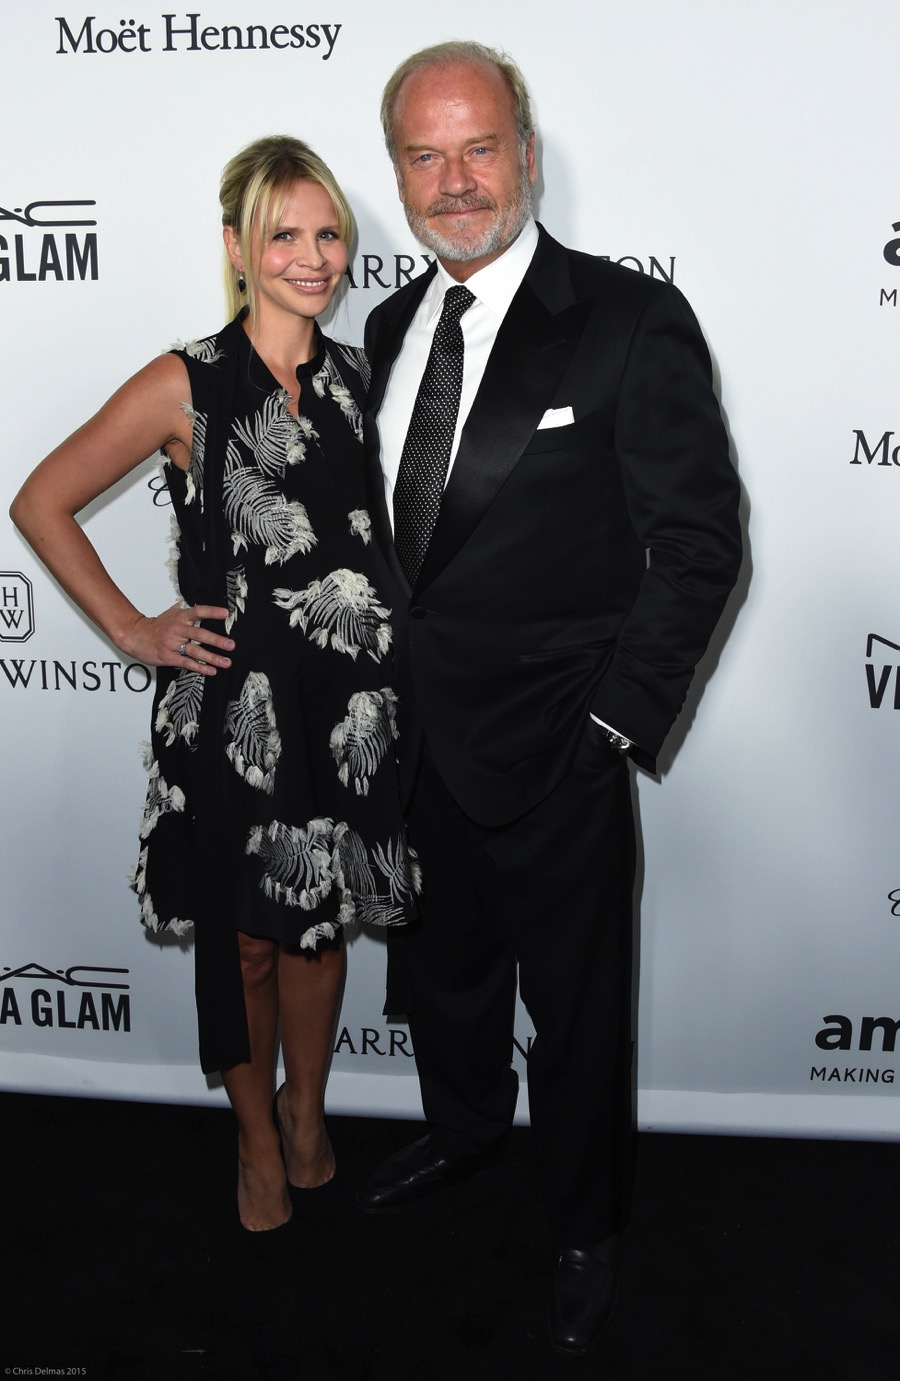 Kelsey Grammer and pregnant wife Kayte at the amfAR Inspiration Gala 2016